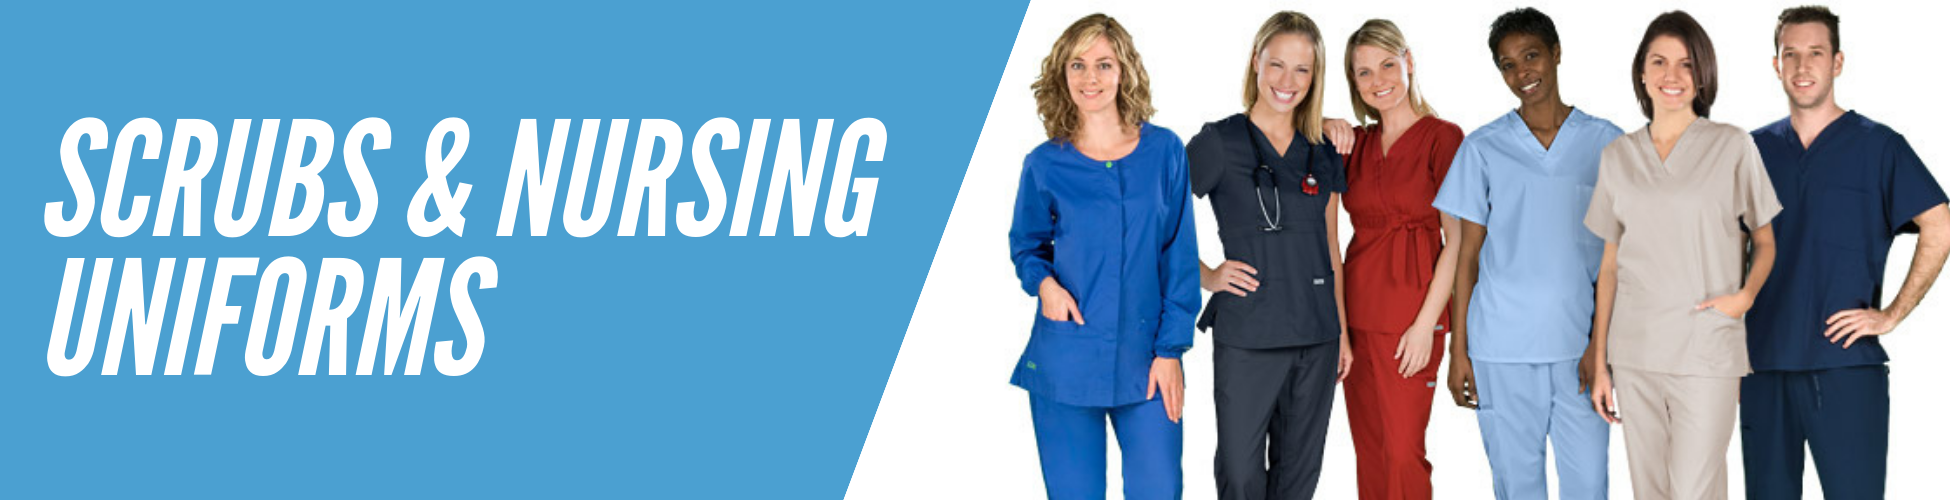 scrubs-nursing-uniforms-banner-v3.png